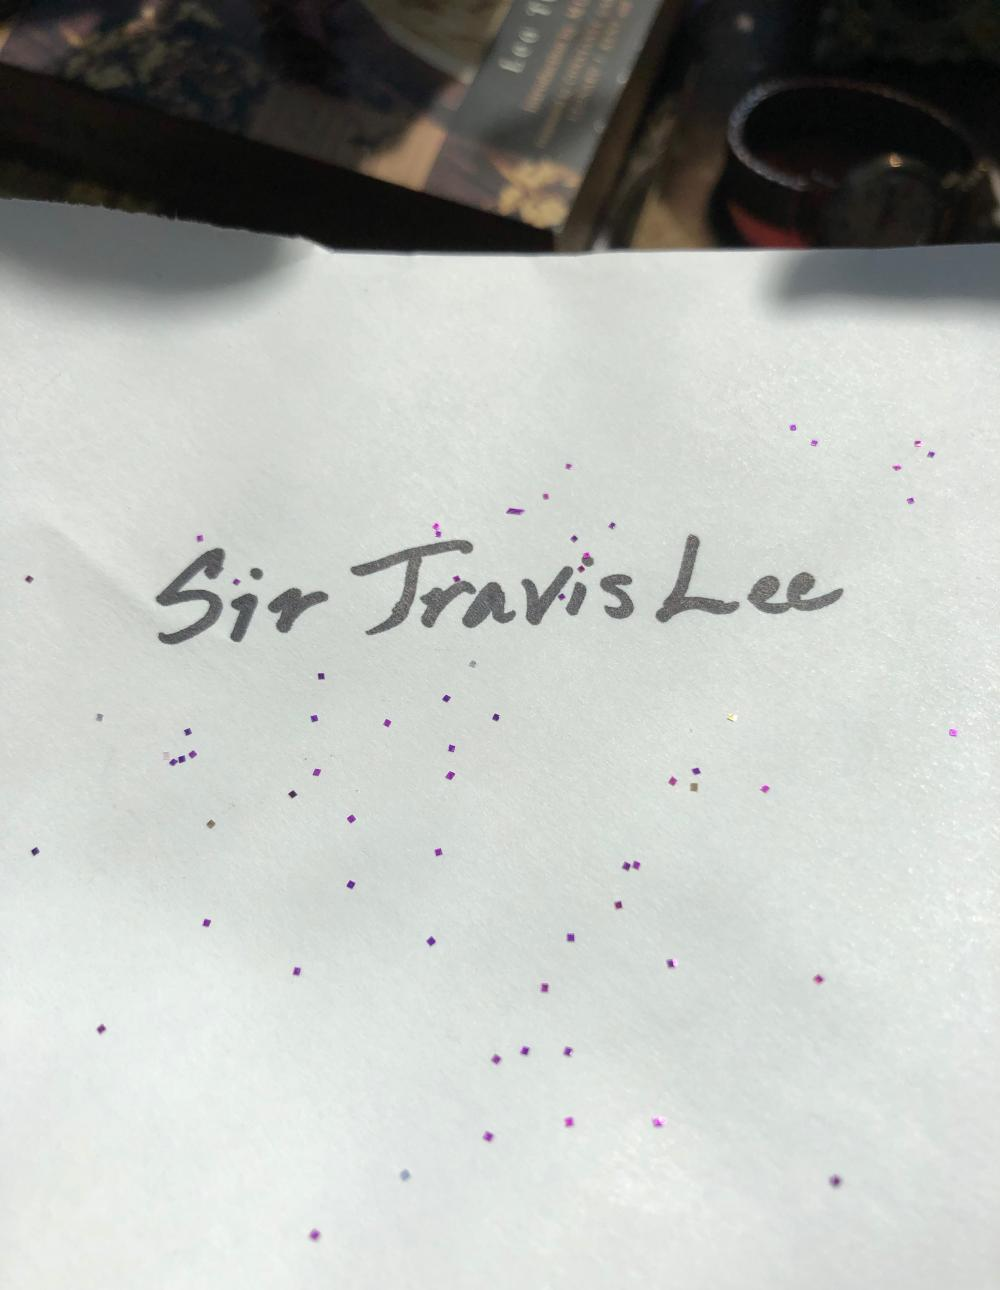 Sir Travis Lee with glitter